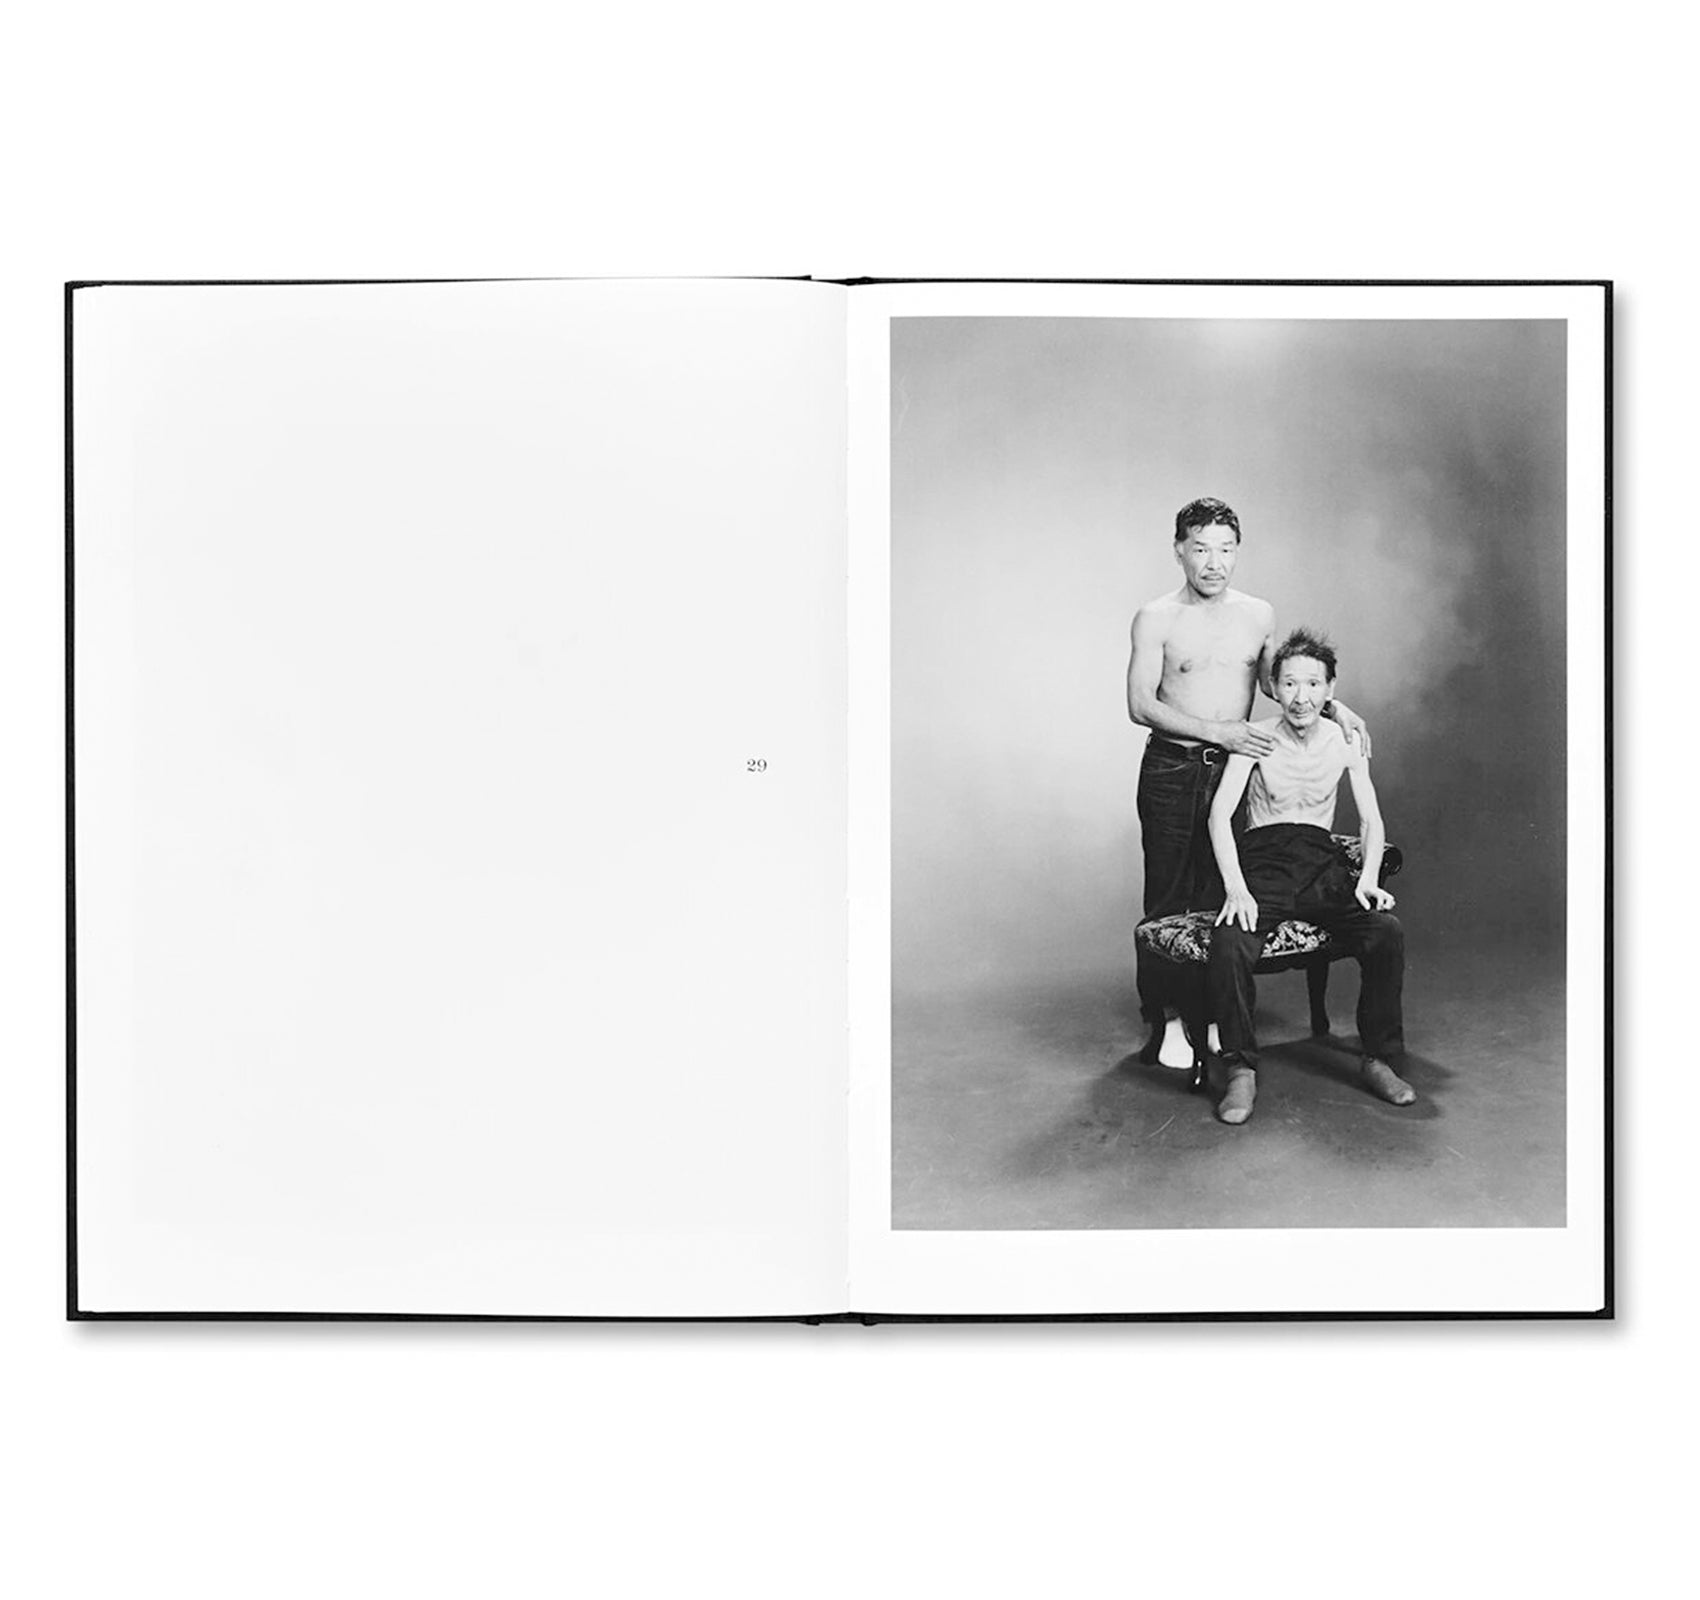 FAMILY by Masahisa Fukase